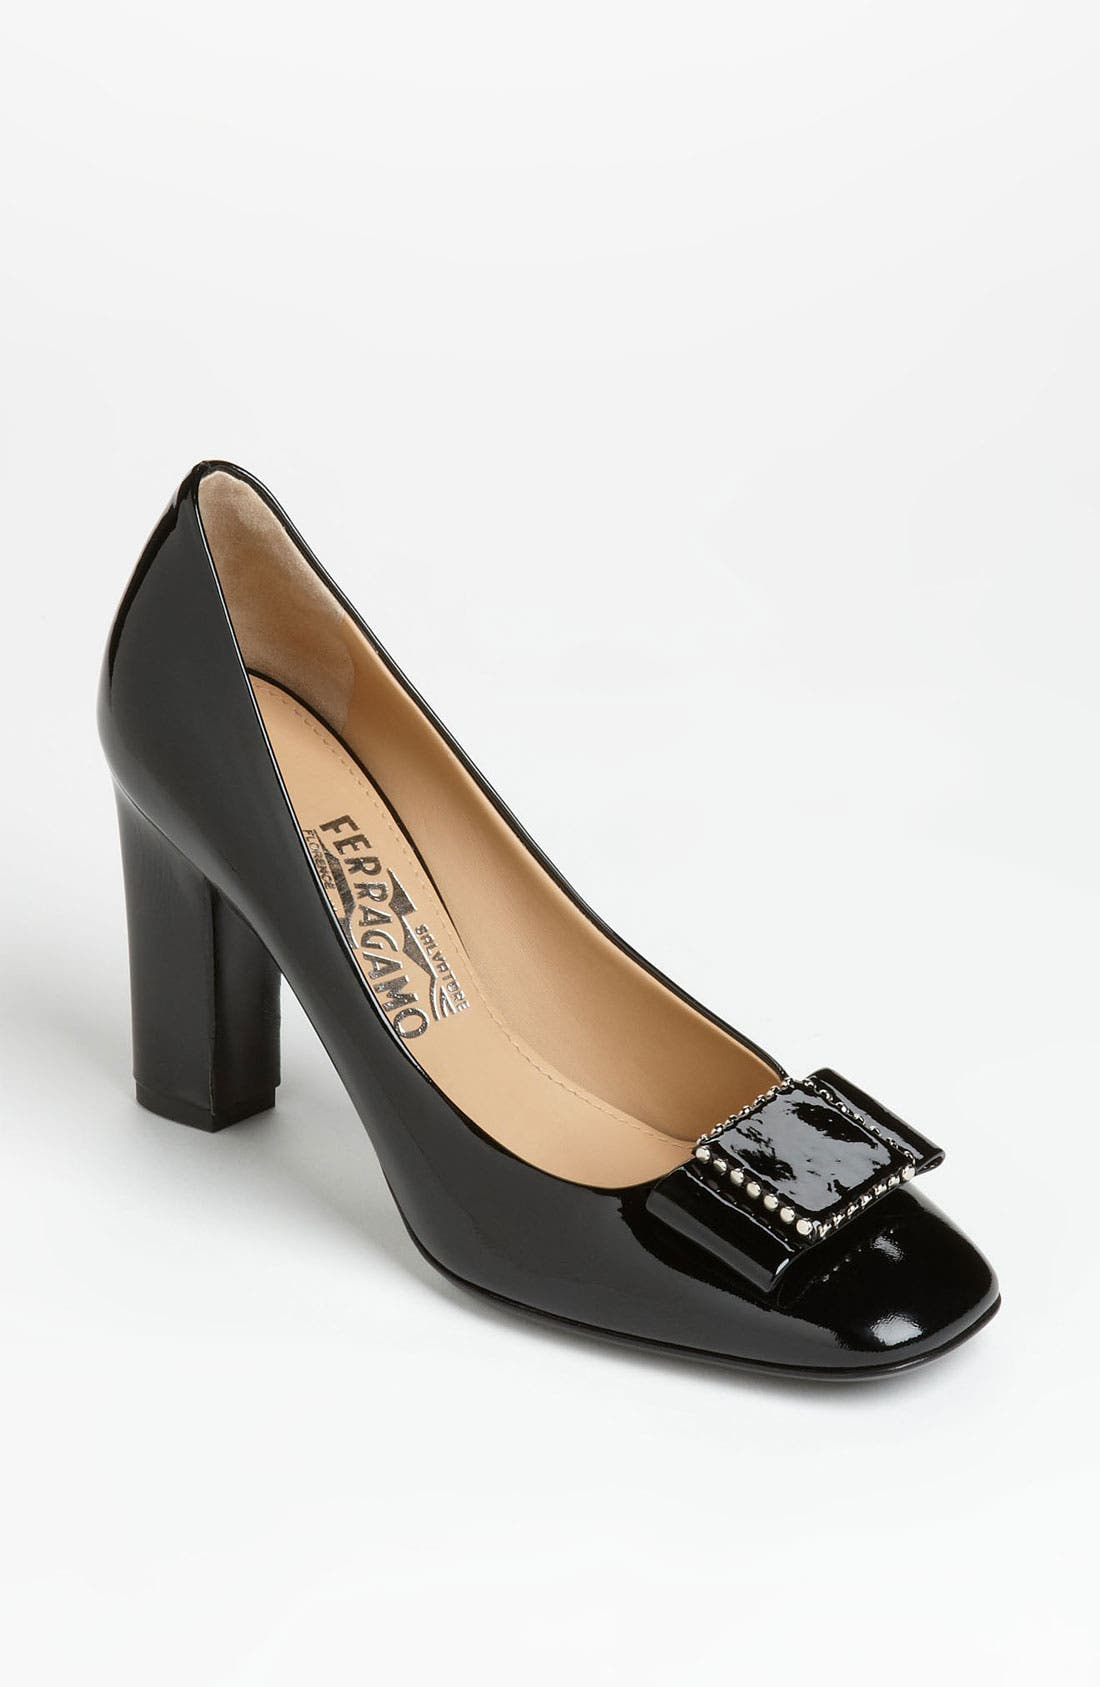 Alternate Image 1 Selected - Salvatore Ferragamo 'Selia' Pump